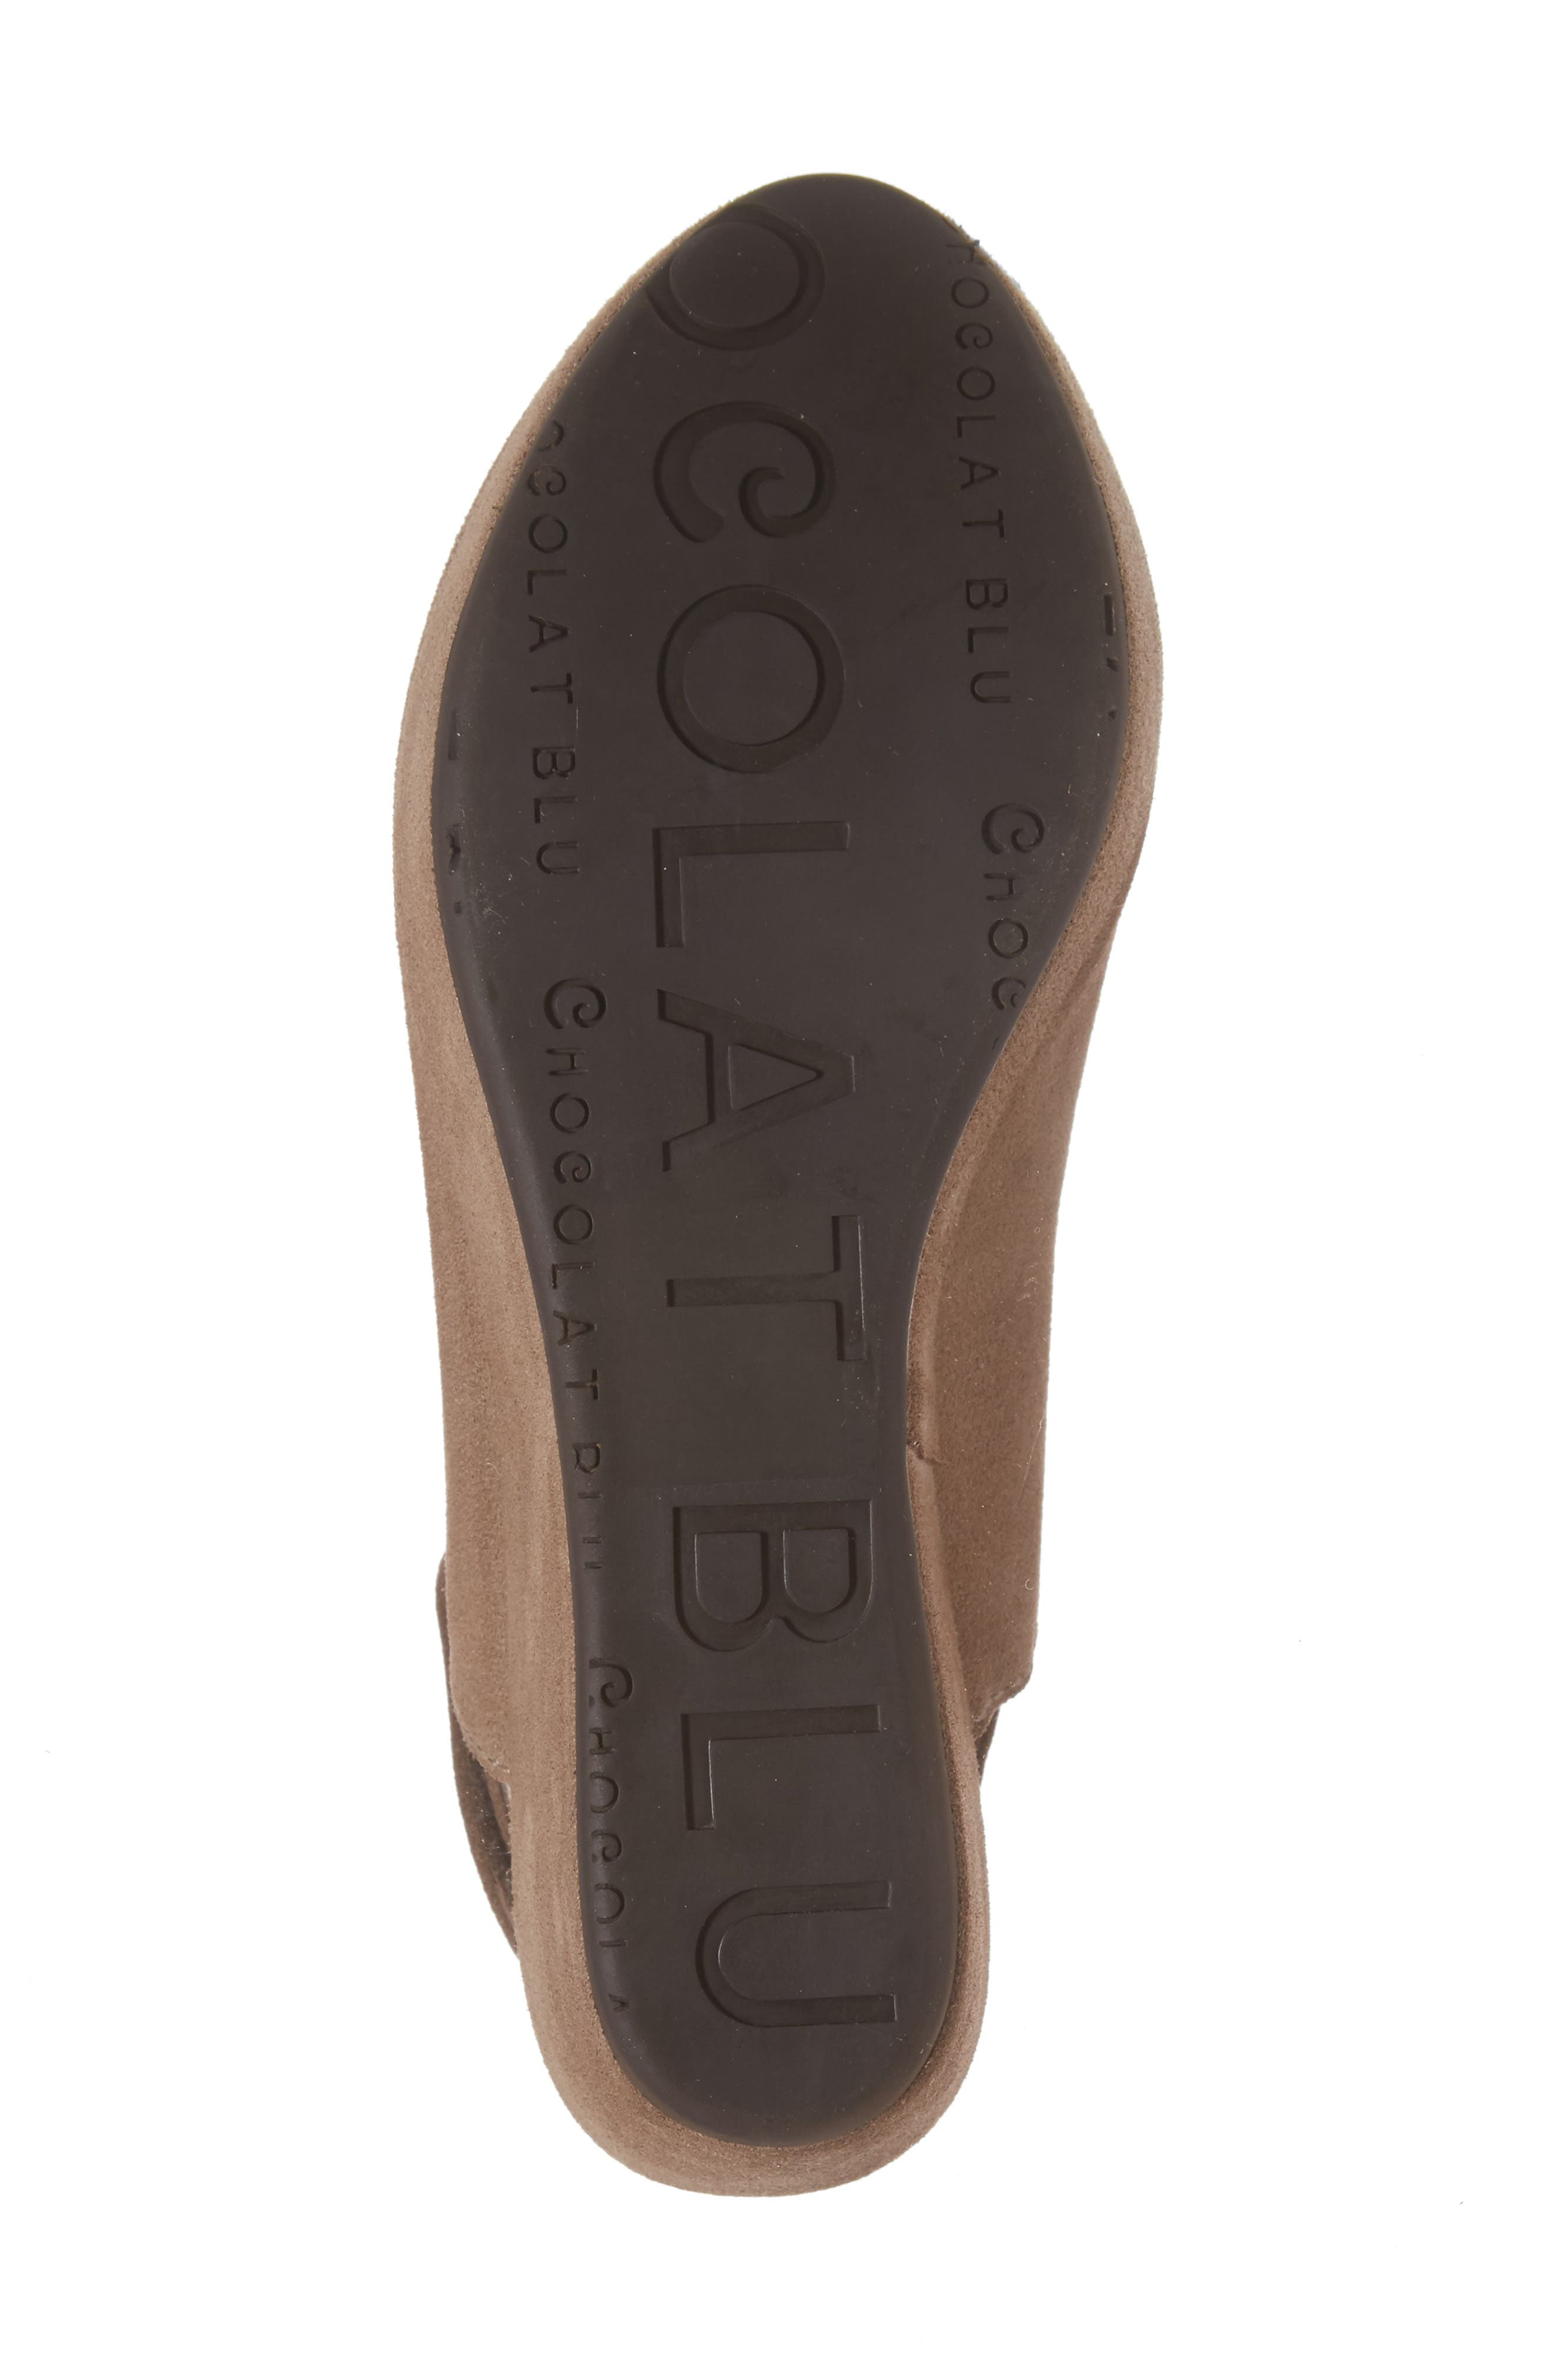 Cutout Wedge Sandal,                             Alternate thumbnail 6, color,                             Taupe Suede